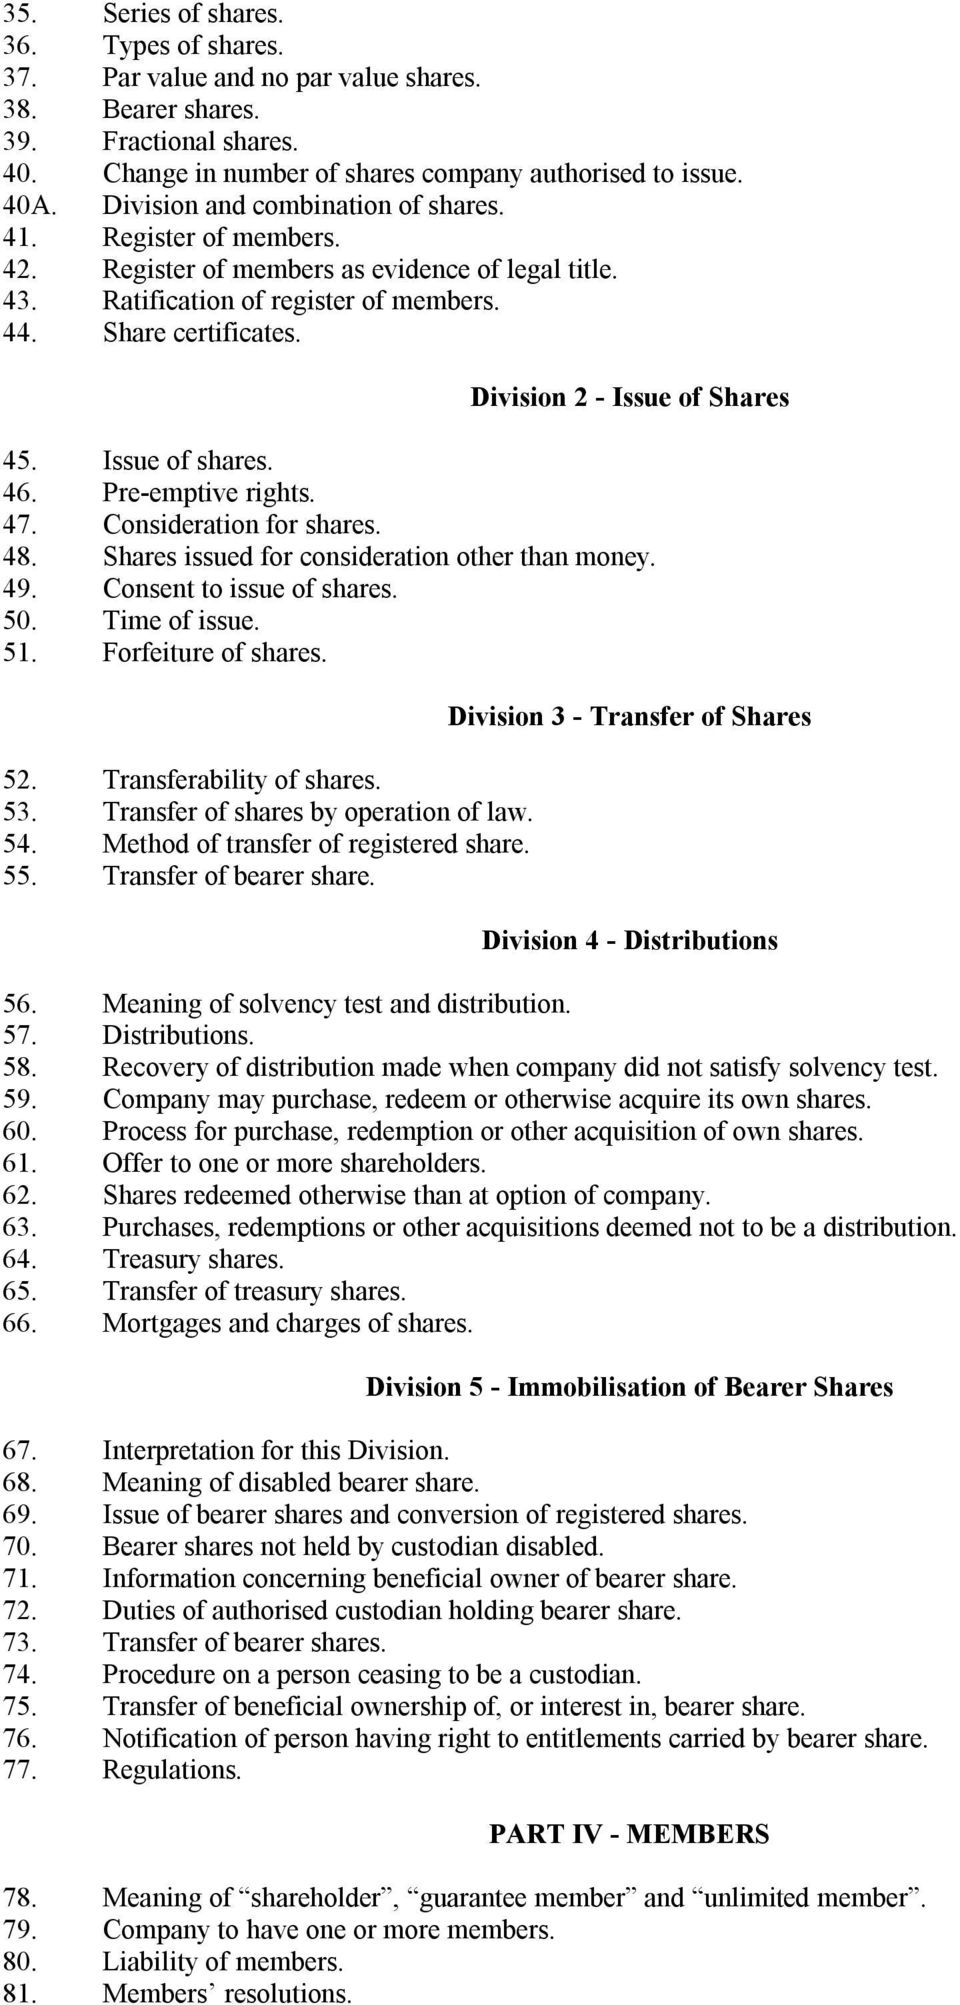 Division 2 - Issue of Shares 45. Issue of shares. 46. Pre-emptive rights. 47. Consideration for shares. 48. Shares issued for consideration other than money. 49. Consent to issue of shares. 50.